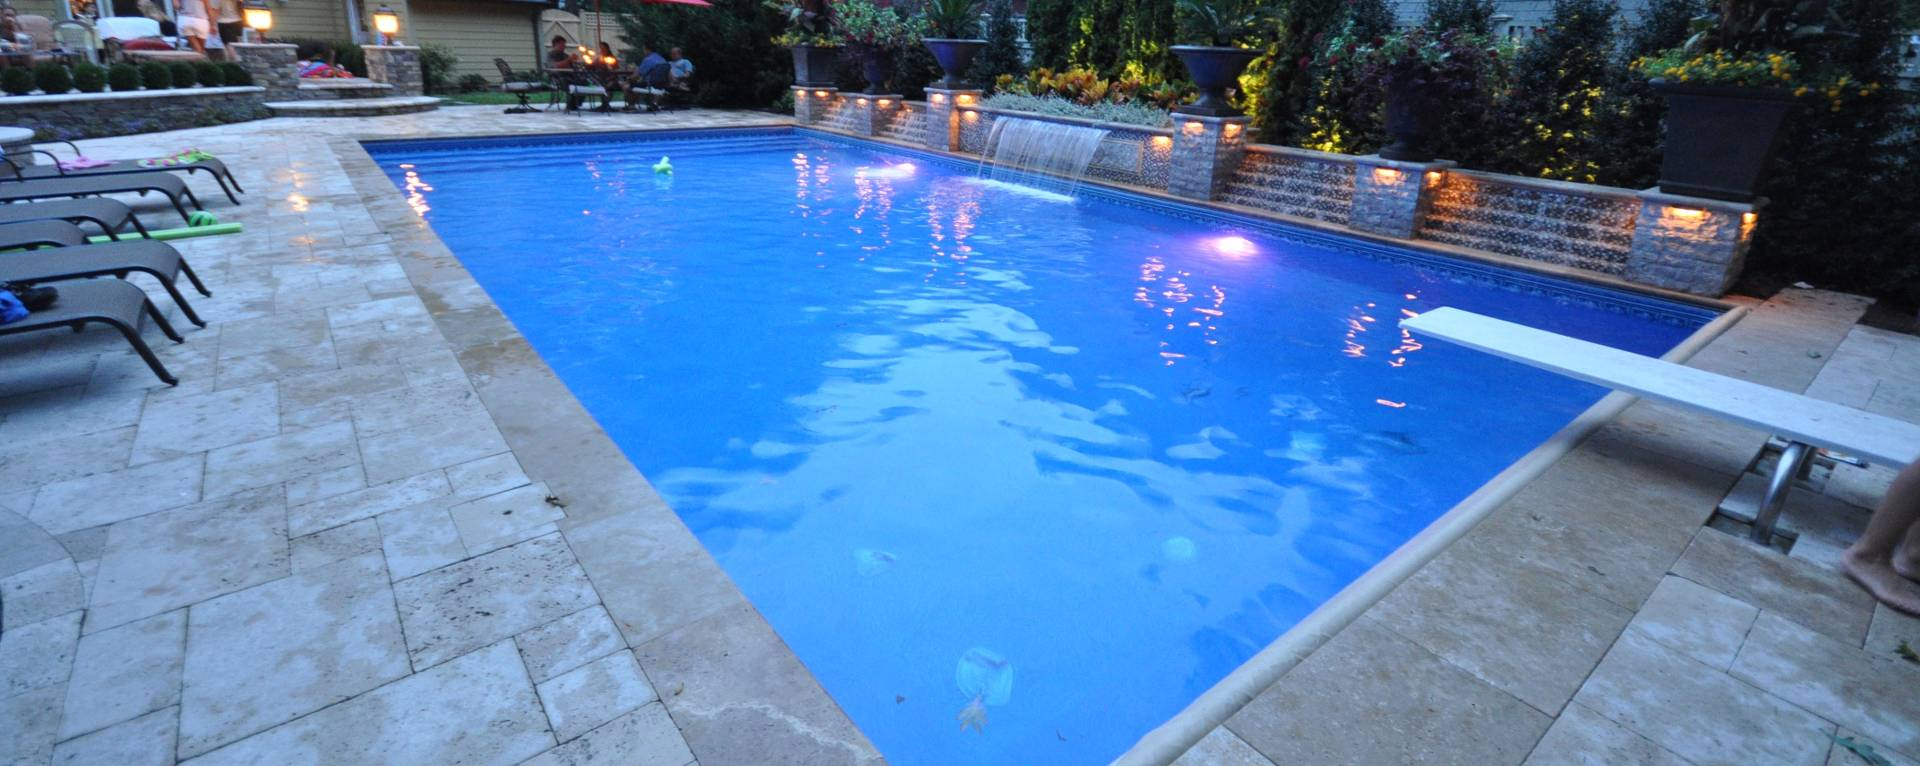 Long Island Pool And Patio Reviews